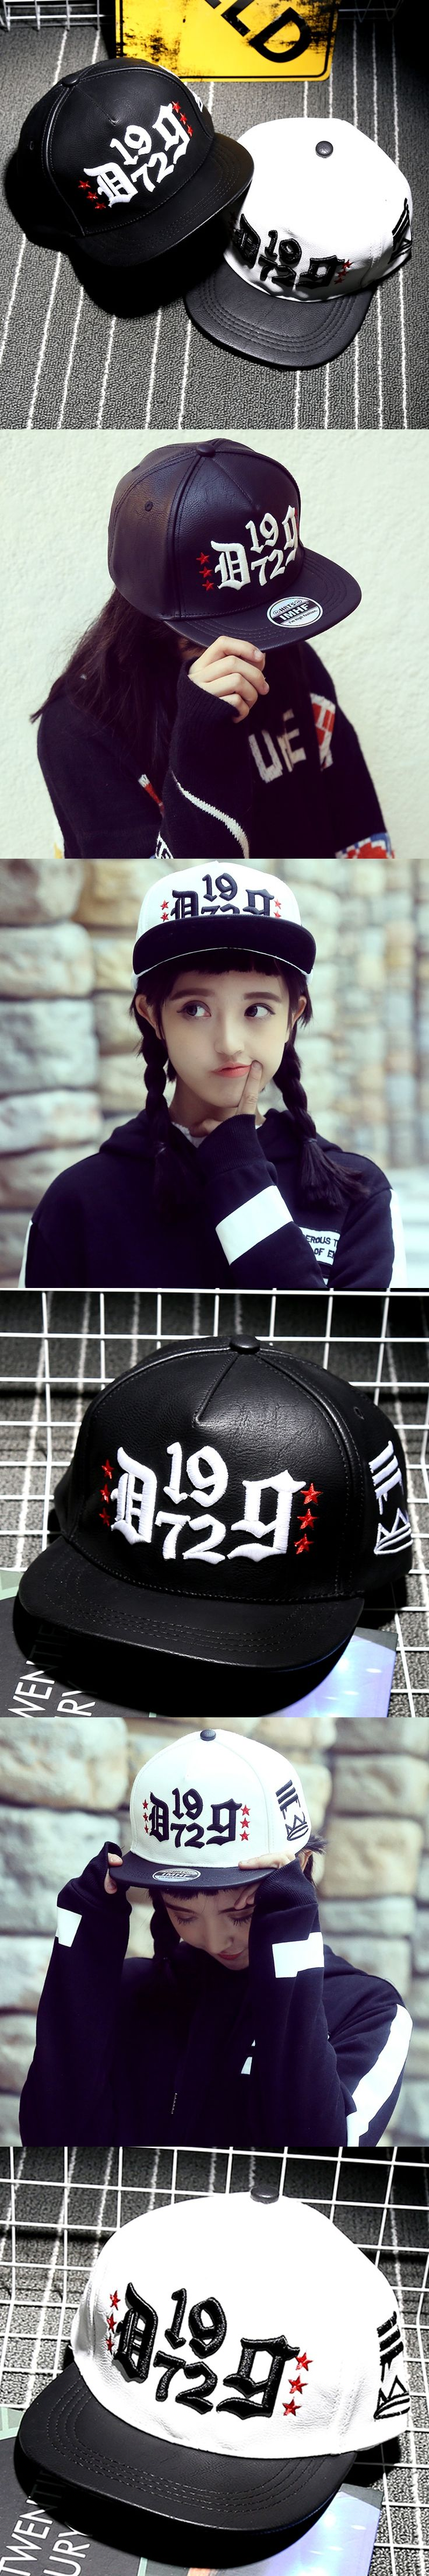 Three-dimensional Embroidery Black Man Baseball Cap Star Hiphop Boy Faux Leather Fabric Novelty Cub Casquette Quality Peaked Cap